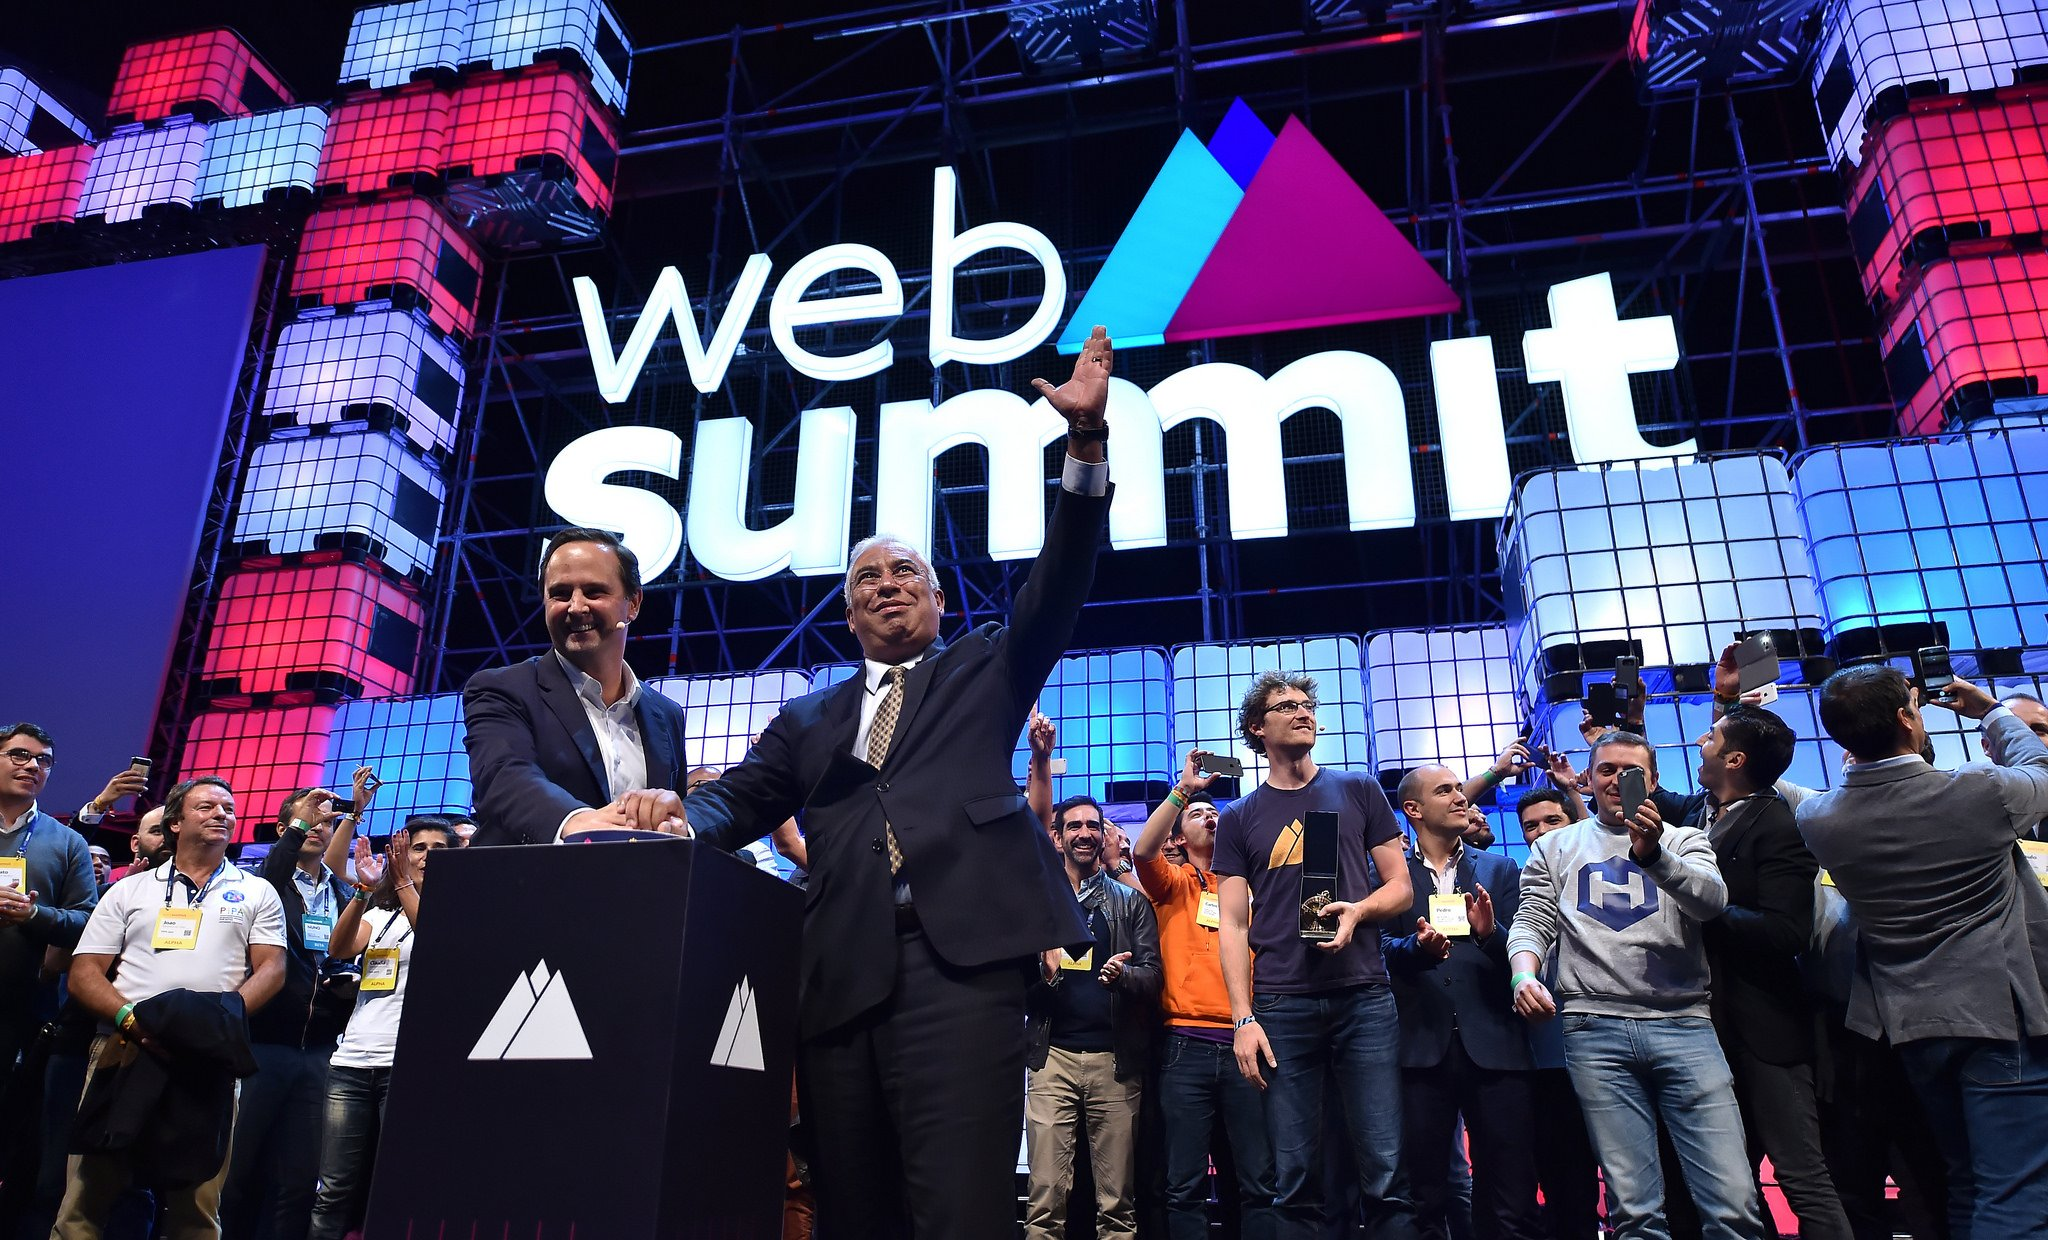 web summit, technote